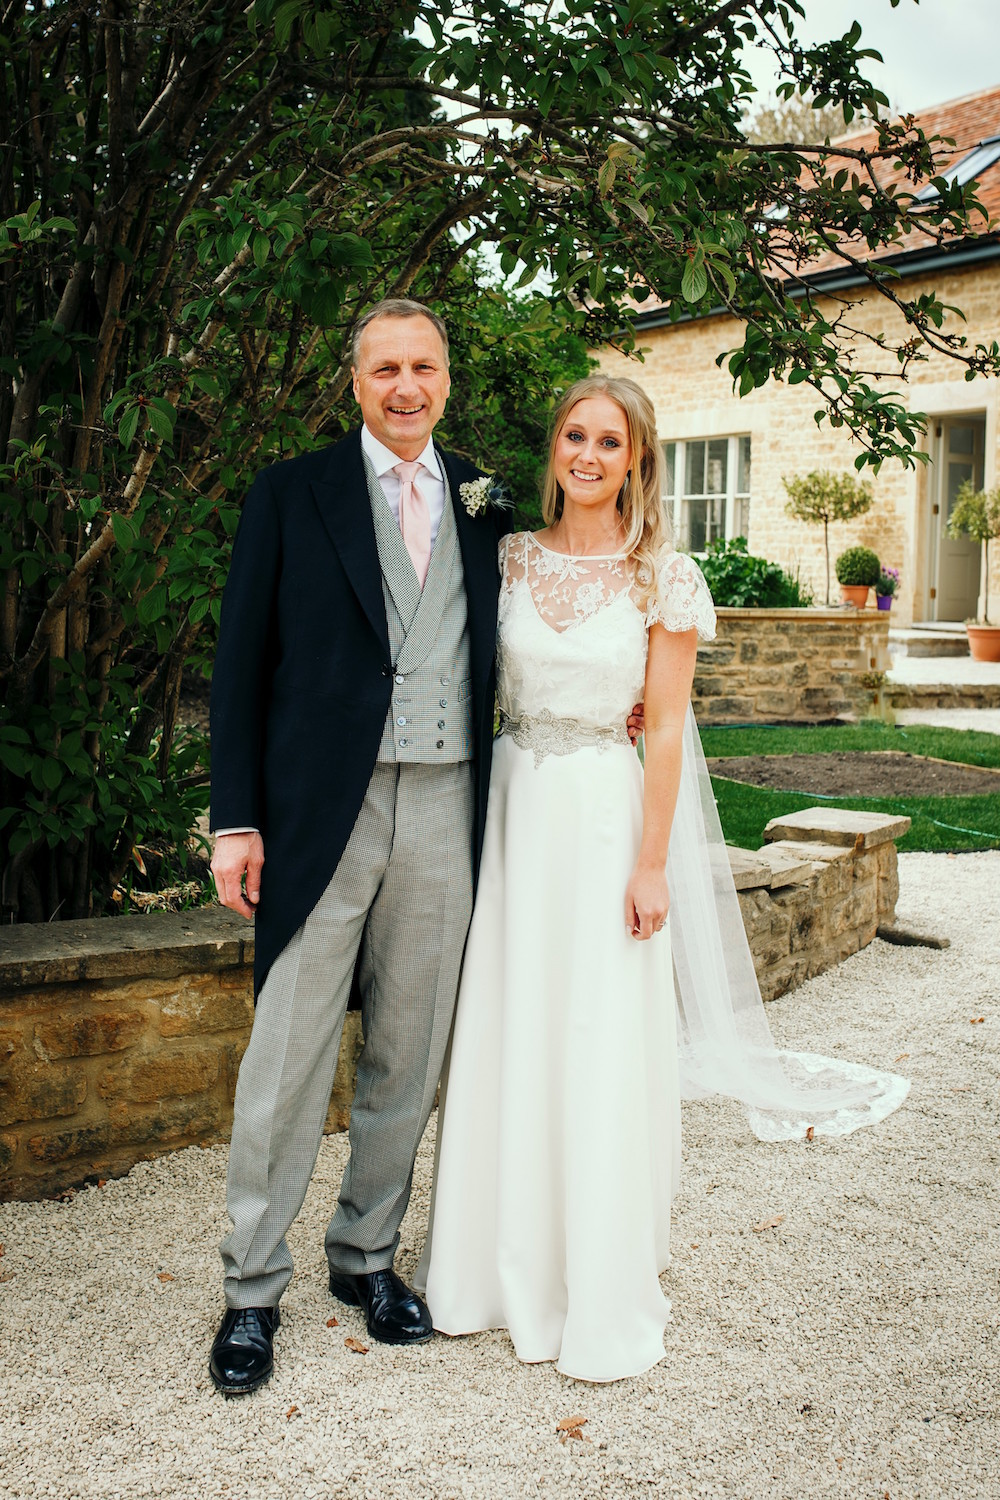 Beautiful bride Jess wore a wedding dress by Halfpenny London